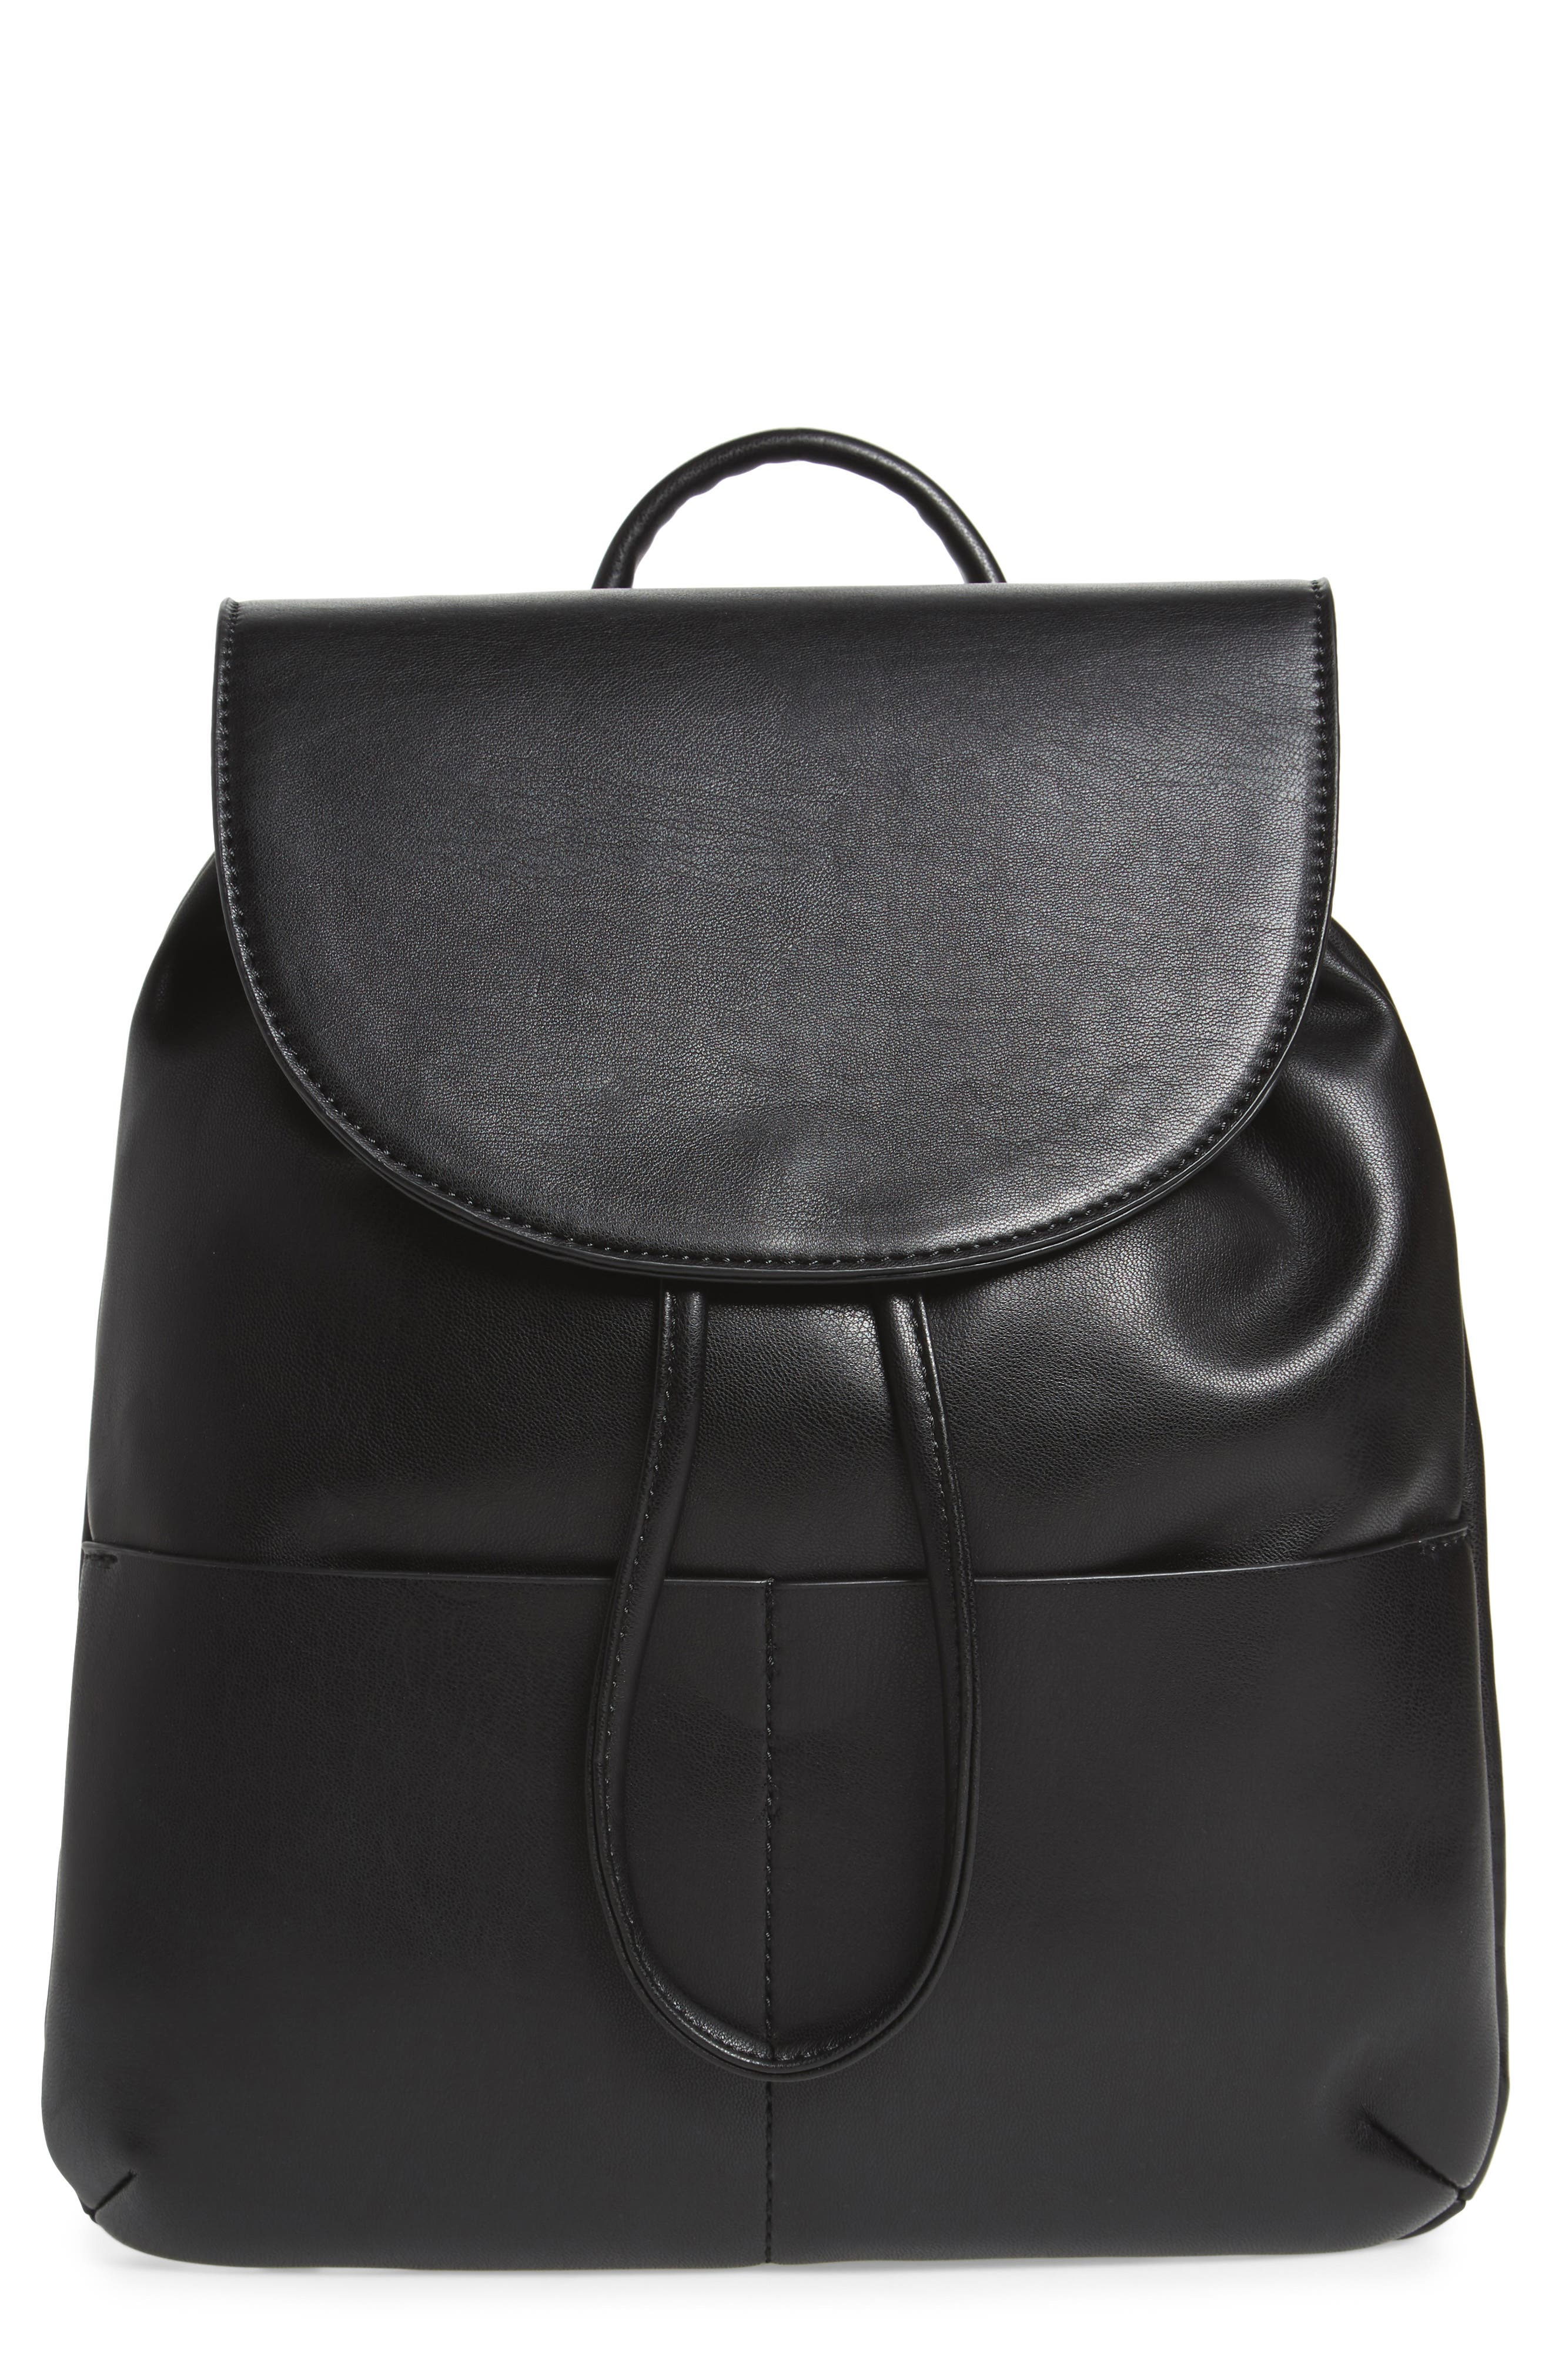 Alternate Image 1 Selected - BP. Drawstring Faux Leather Backpack